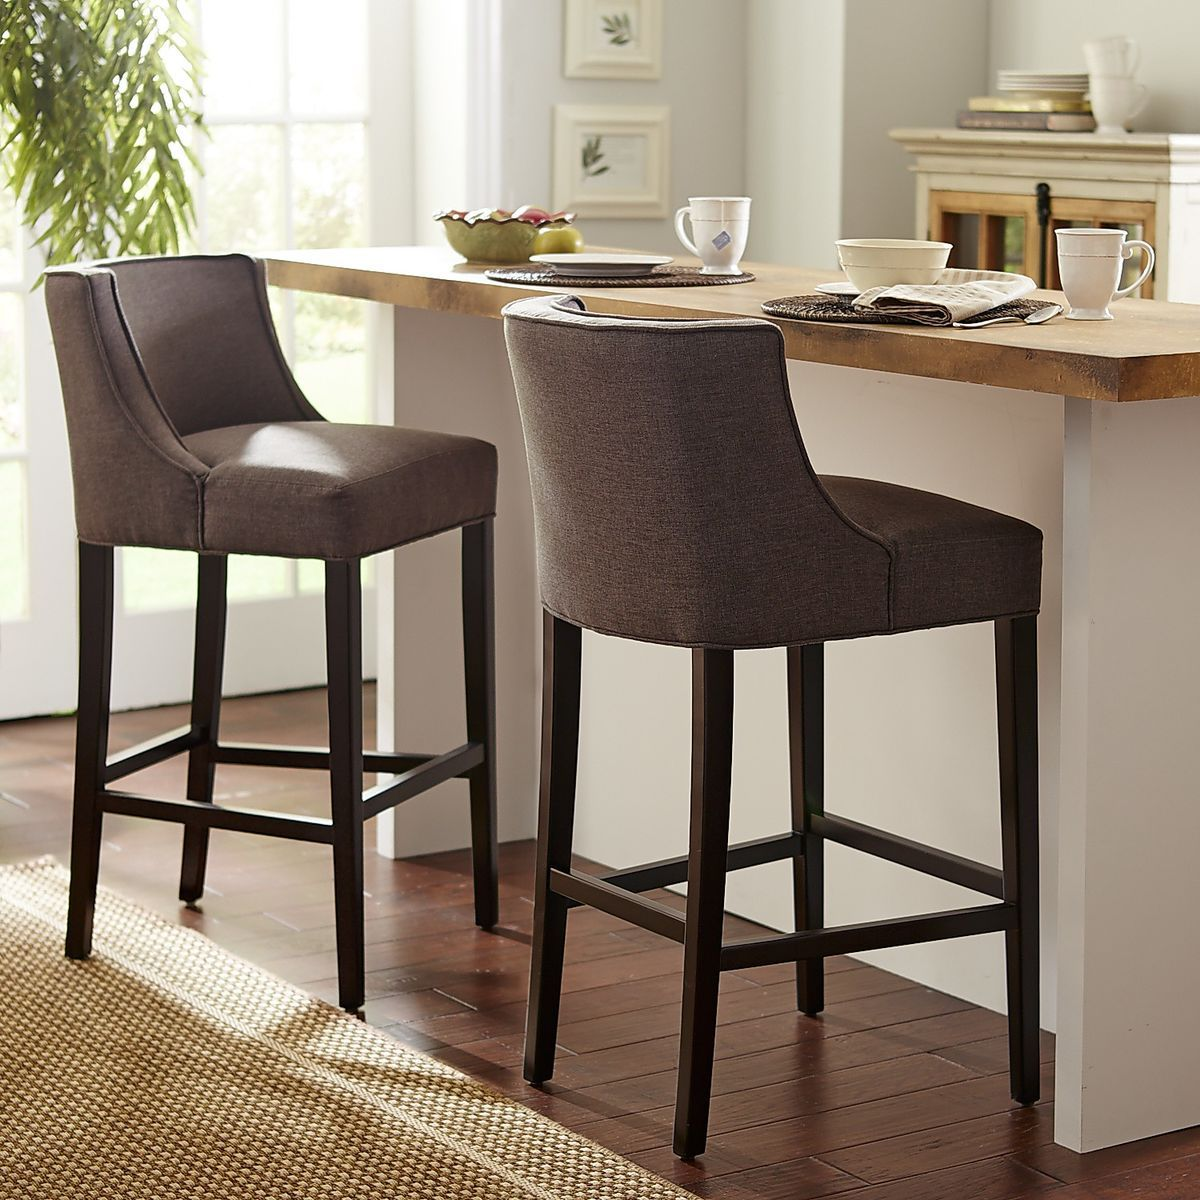 Eva Bar Counter Stools Ash Comfortable Bar Stools Bar